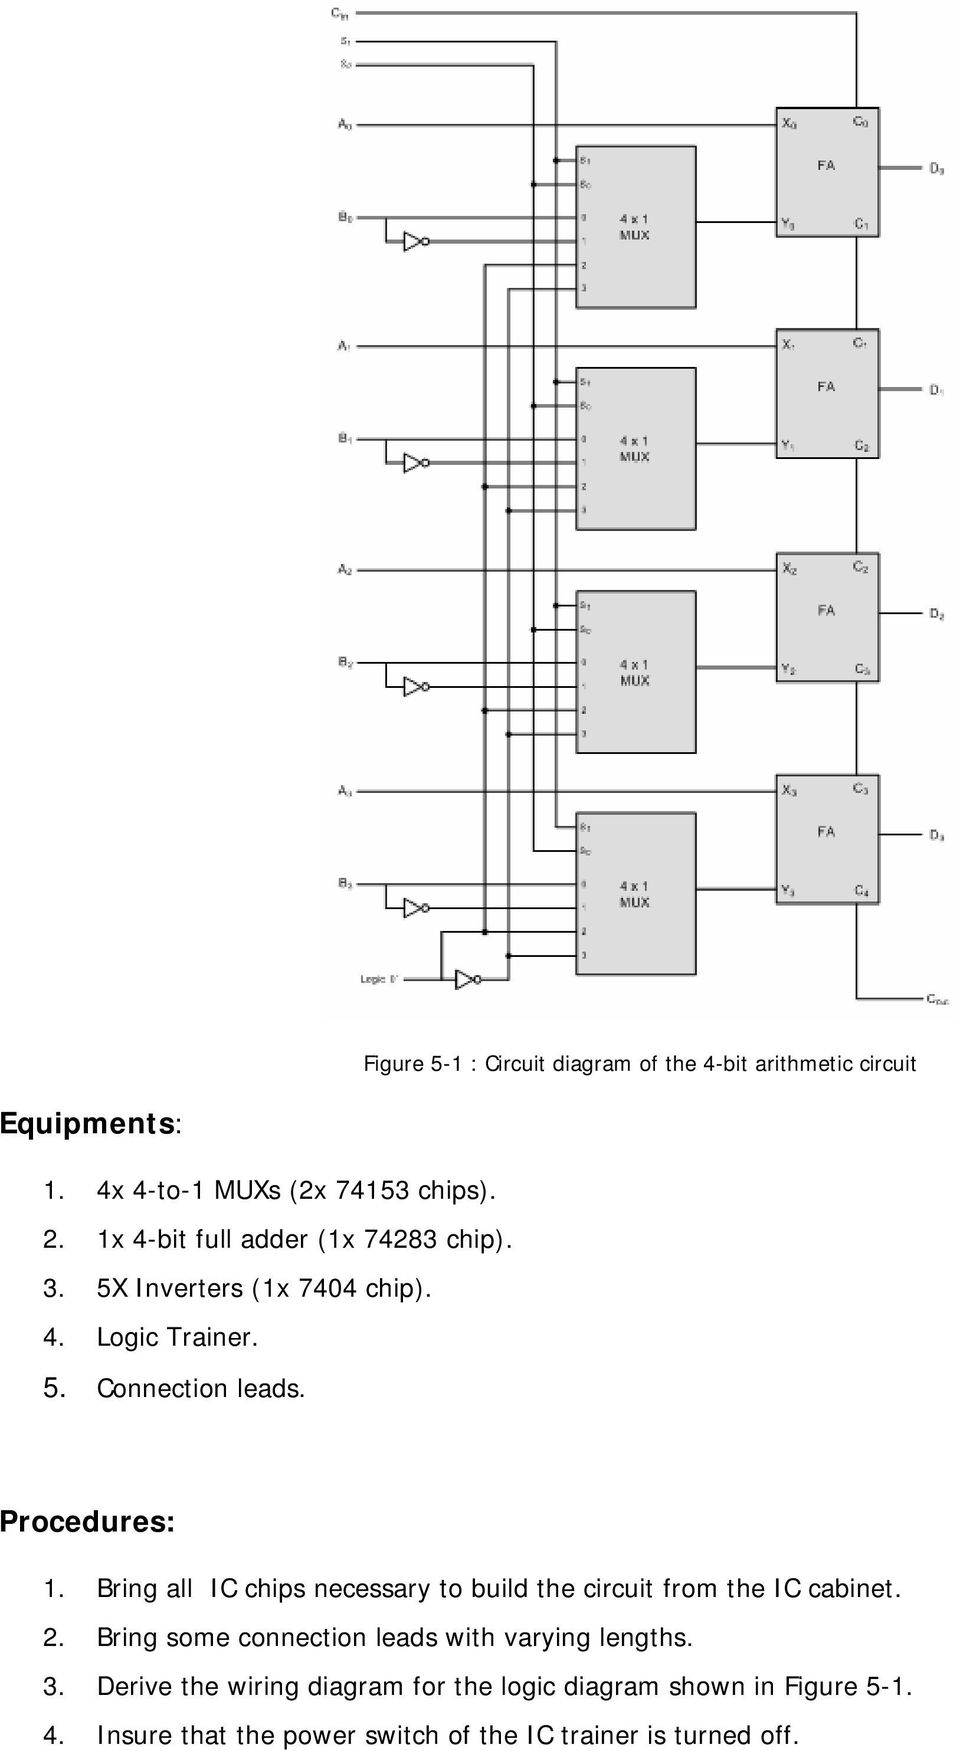 hight resolution of 8 bit alu logic diagram gallery experiment 5 arithmetic logic unit alu